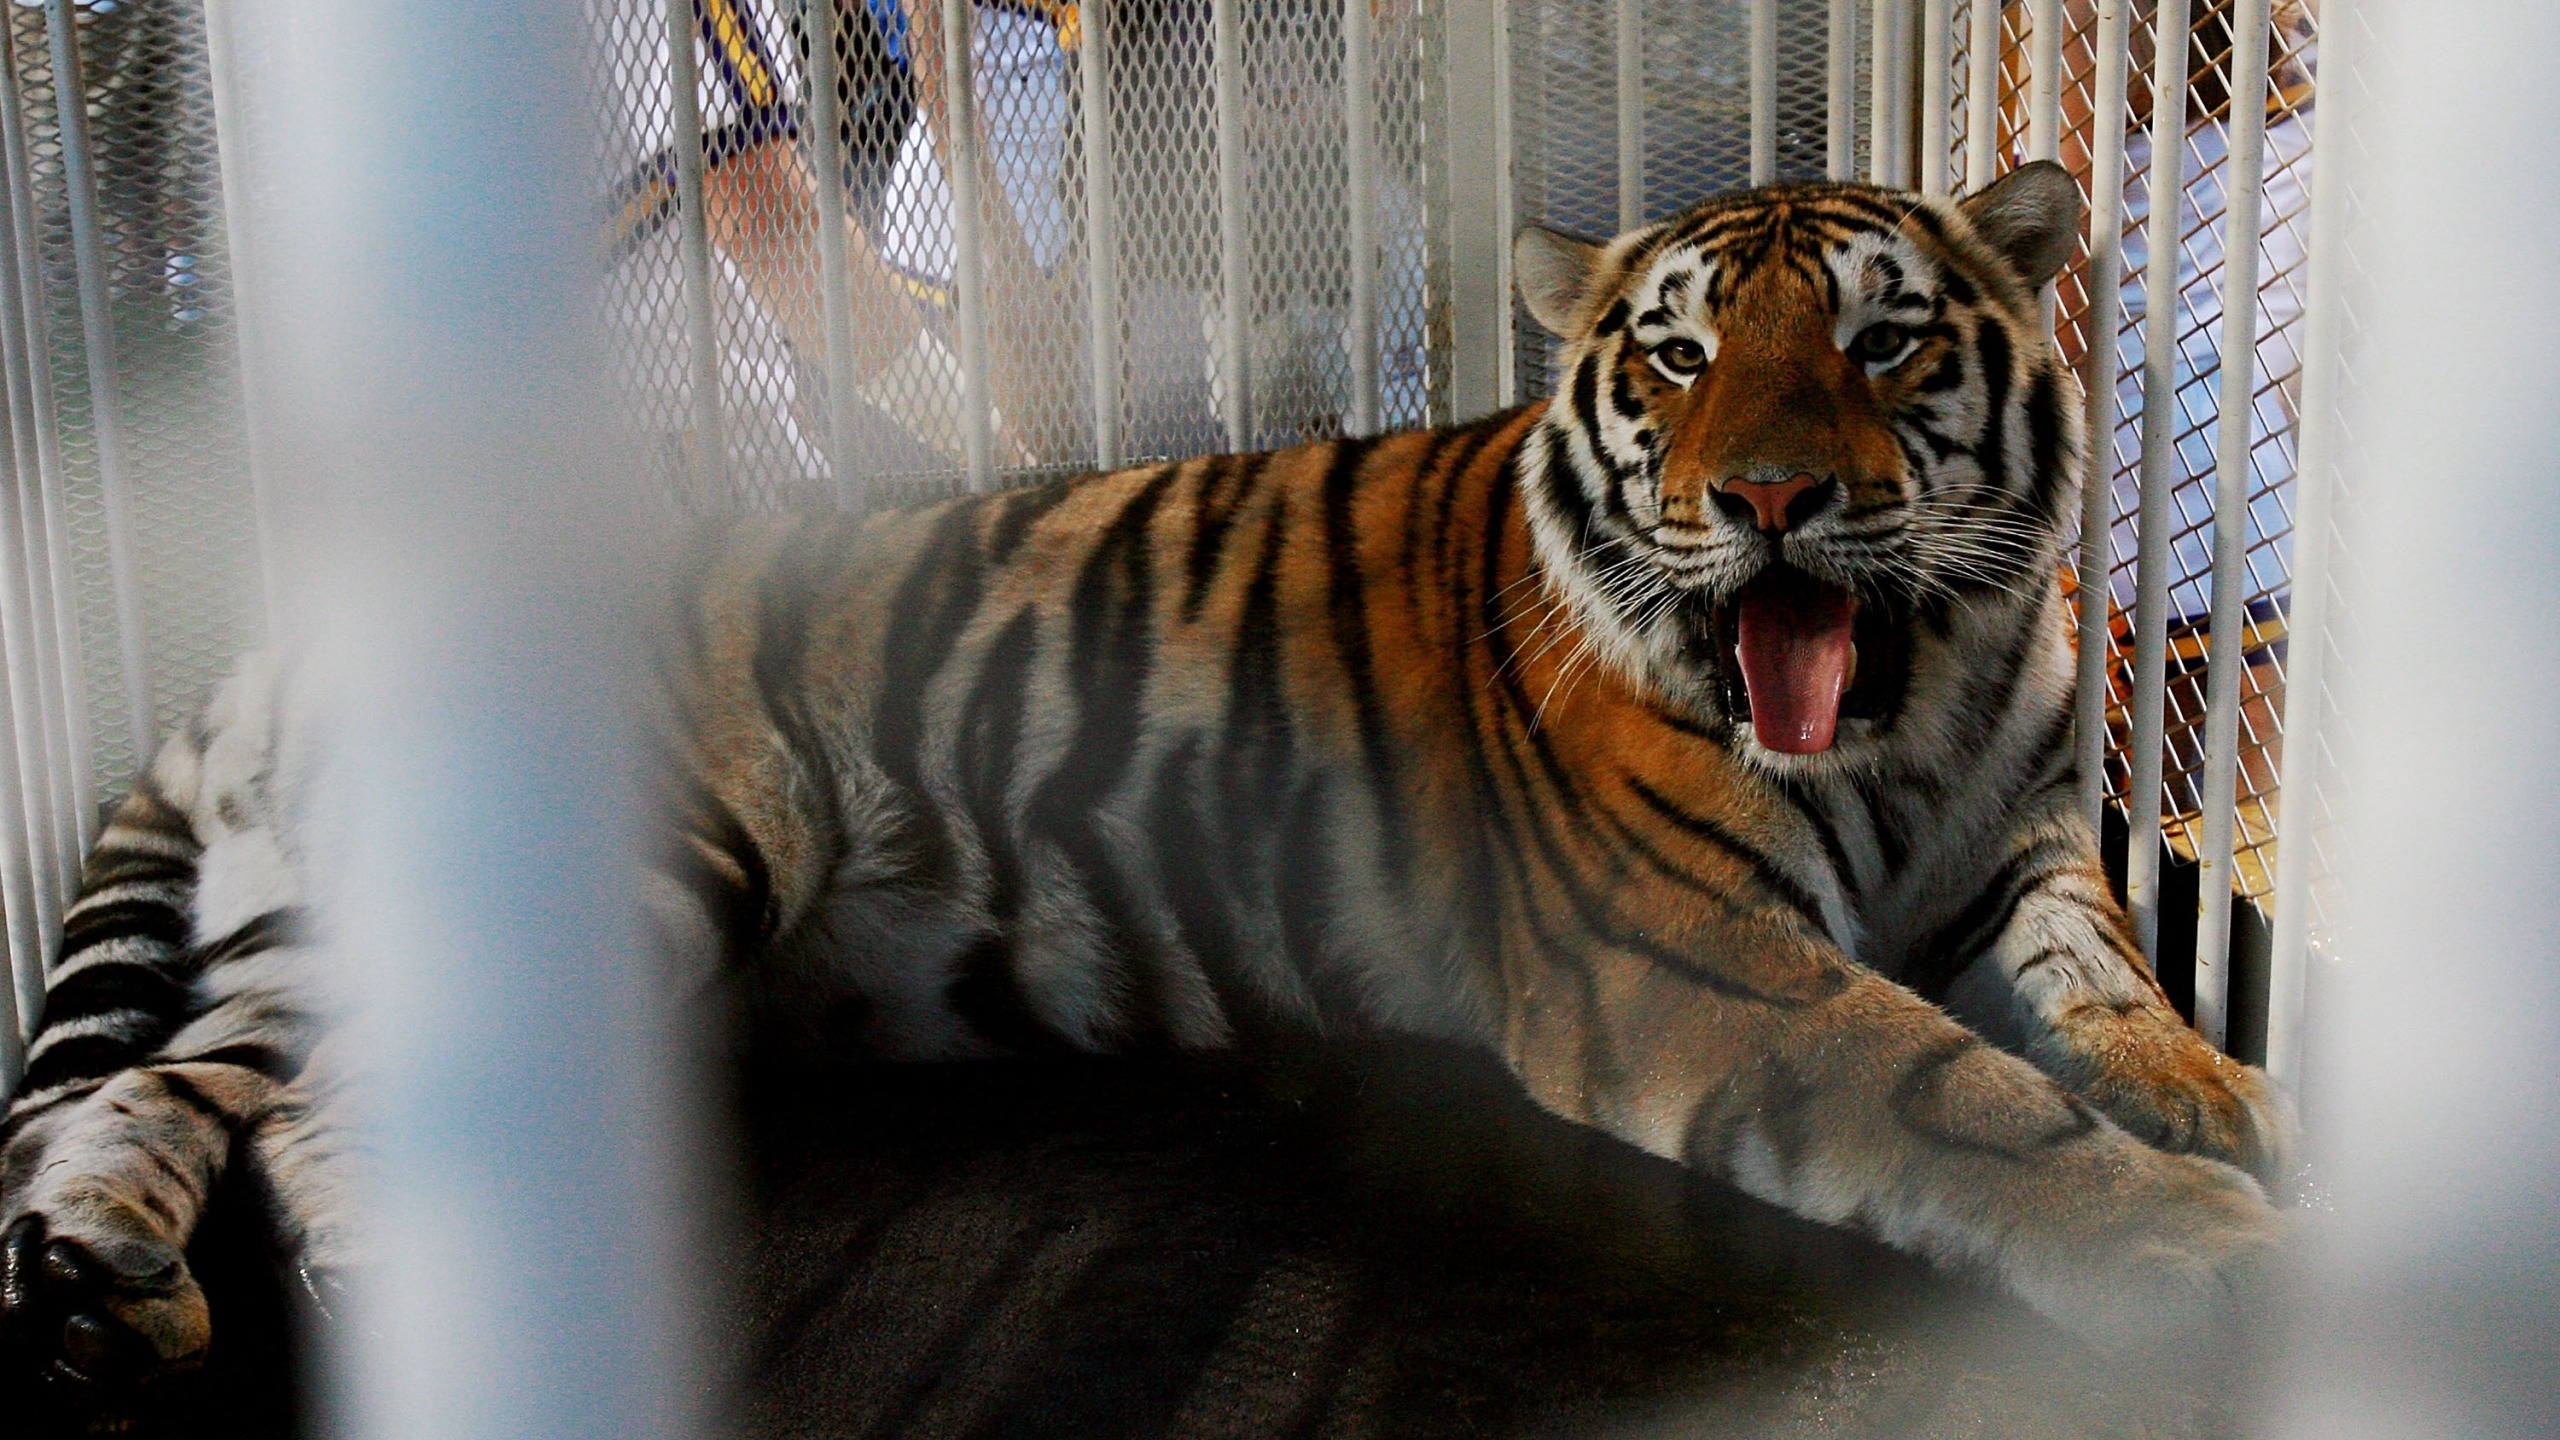 BATON ROUGE, LA - OCTOBER 06: LSU mascot Mike VI, a Bengal/Siberian mixed tiger, is displayed on the field before the Florida Gators take on the LSU Tigers at Tiger Stadium on October 6, 2007 in Baton Rouge, Louisiana. (Photo by Doug Benc/Getty Images)